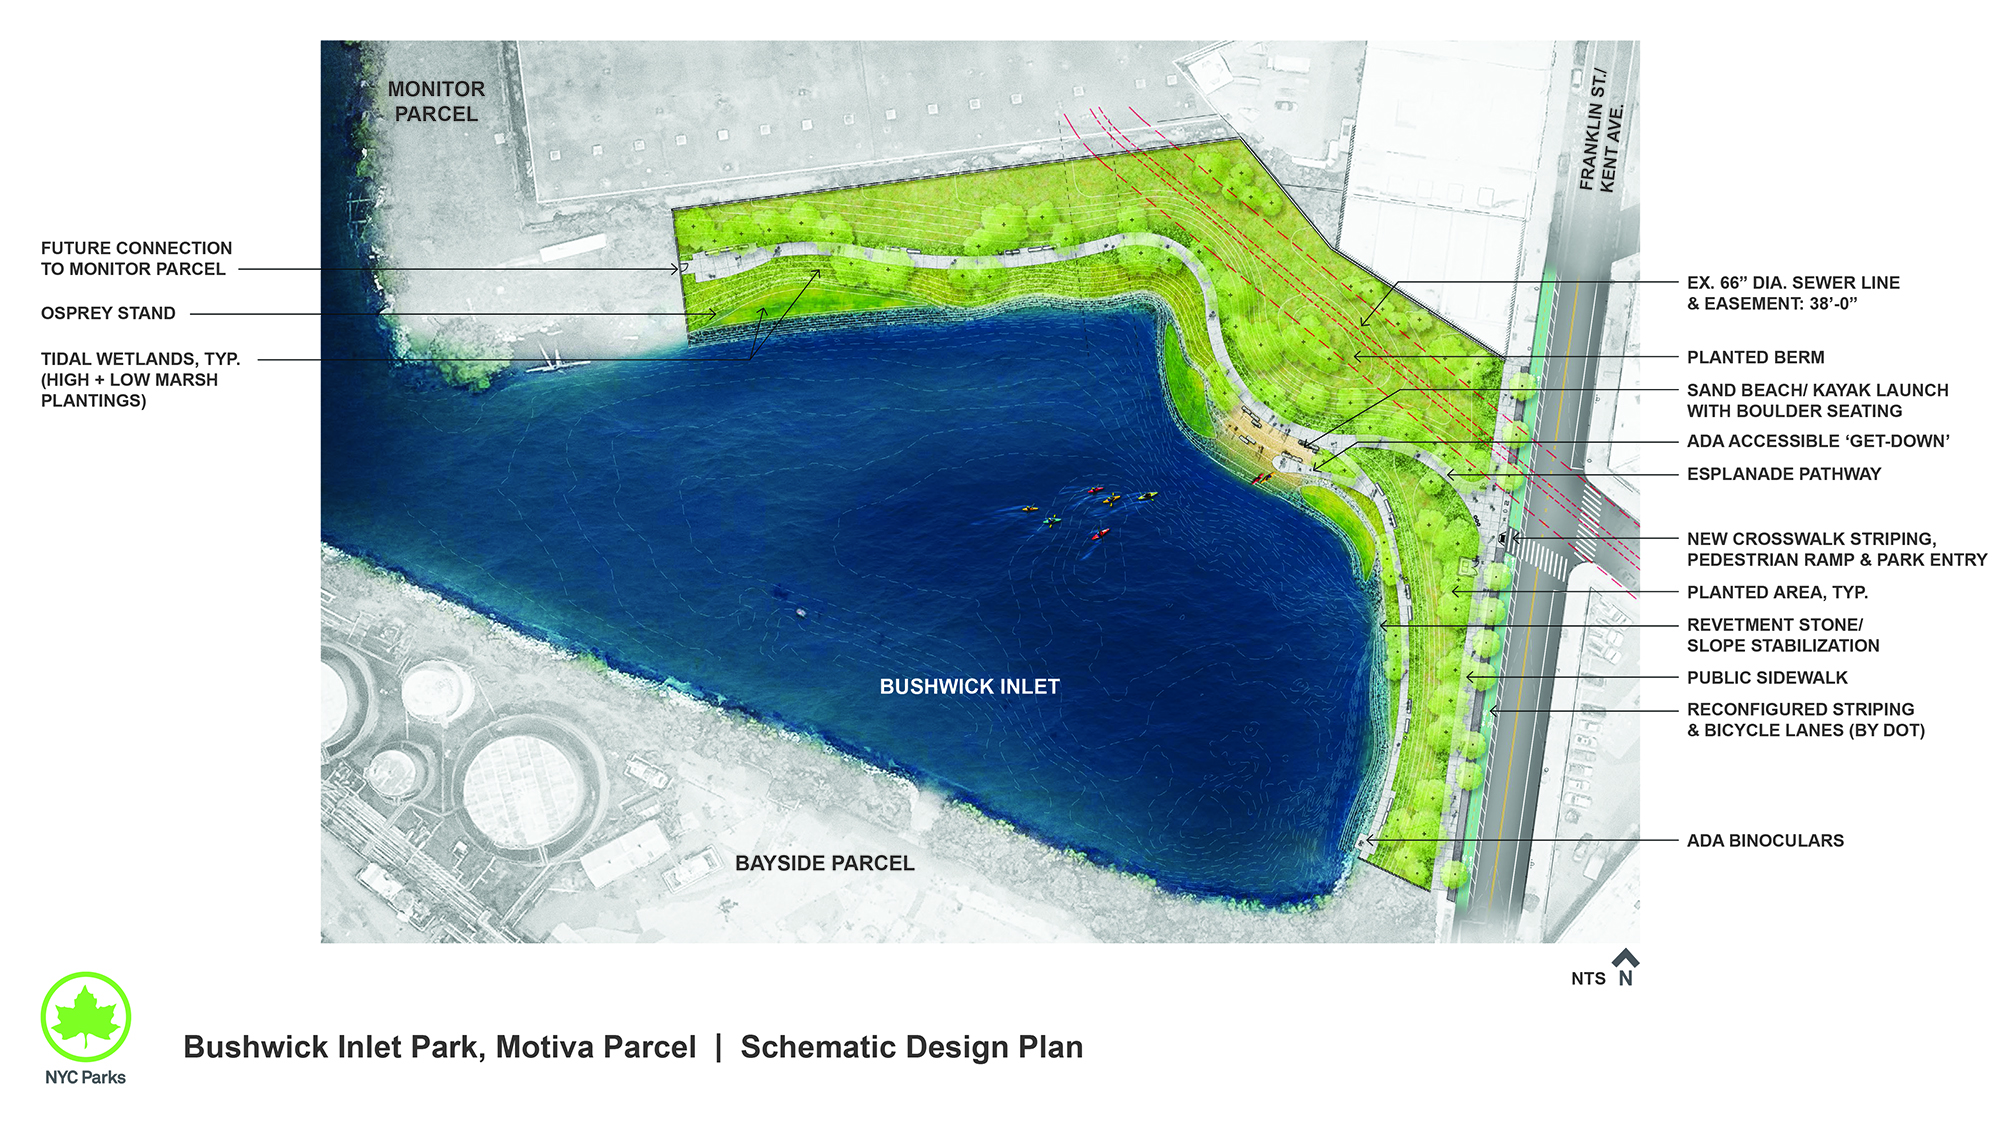 Design of Bushwick Inlet Park Motiva Parcel Remediation and Passive Seating Area Construction